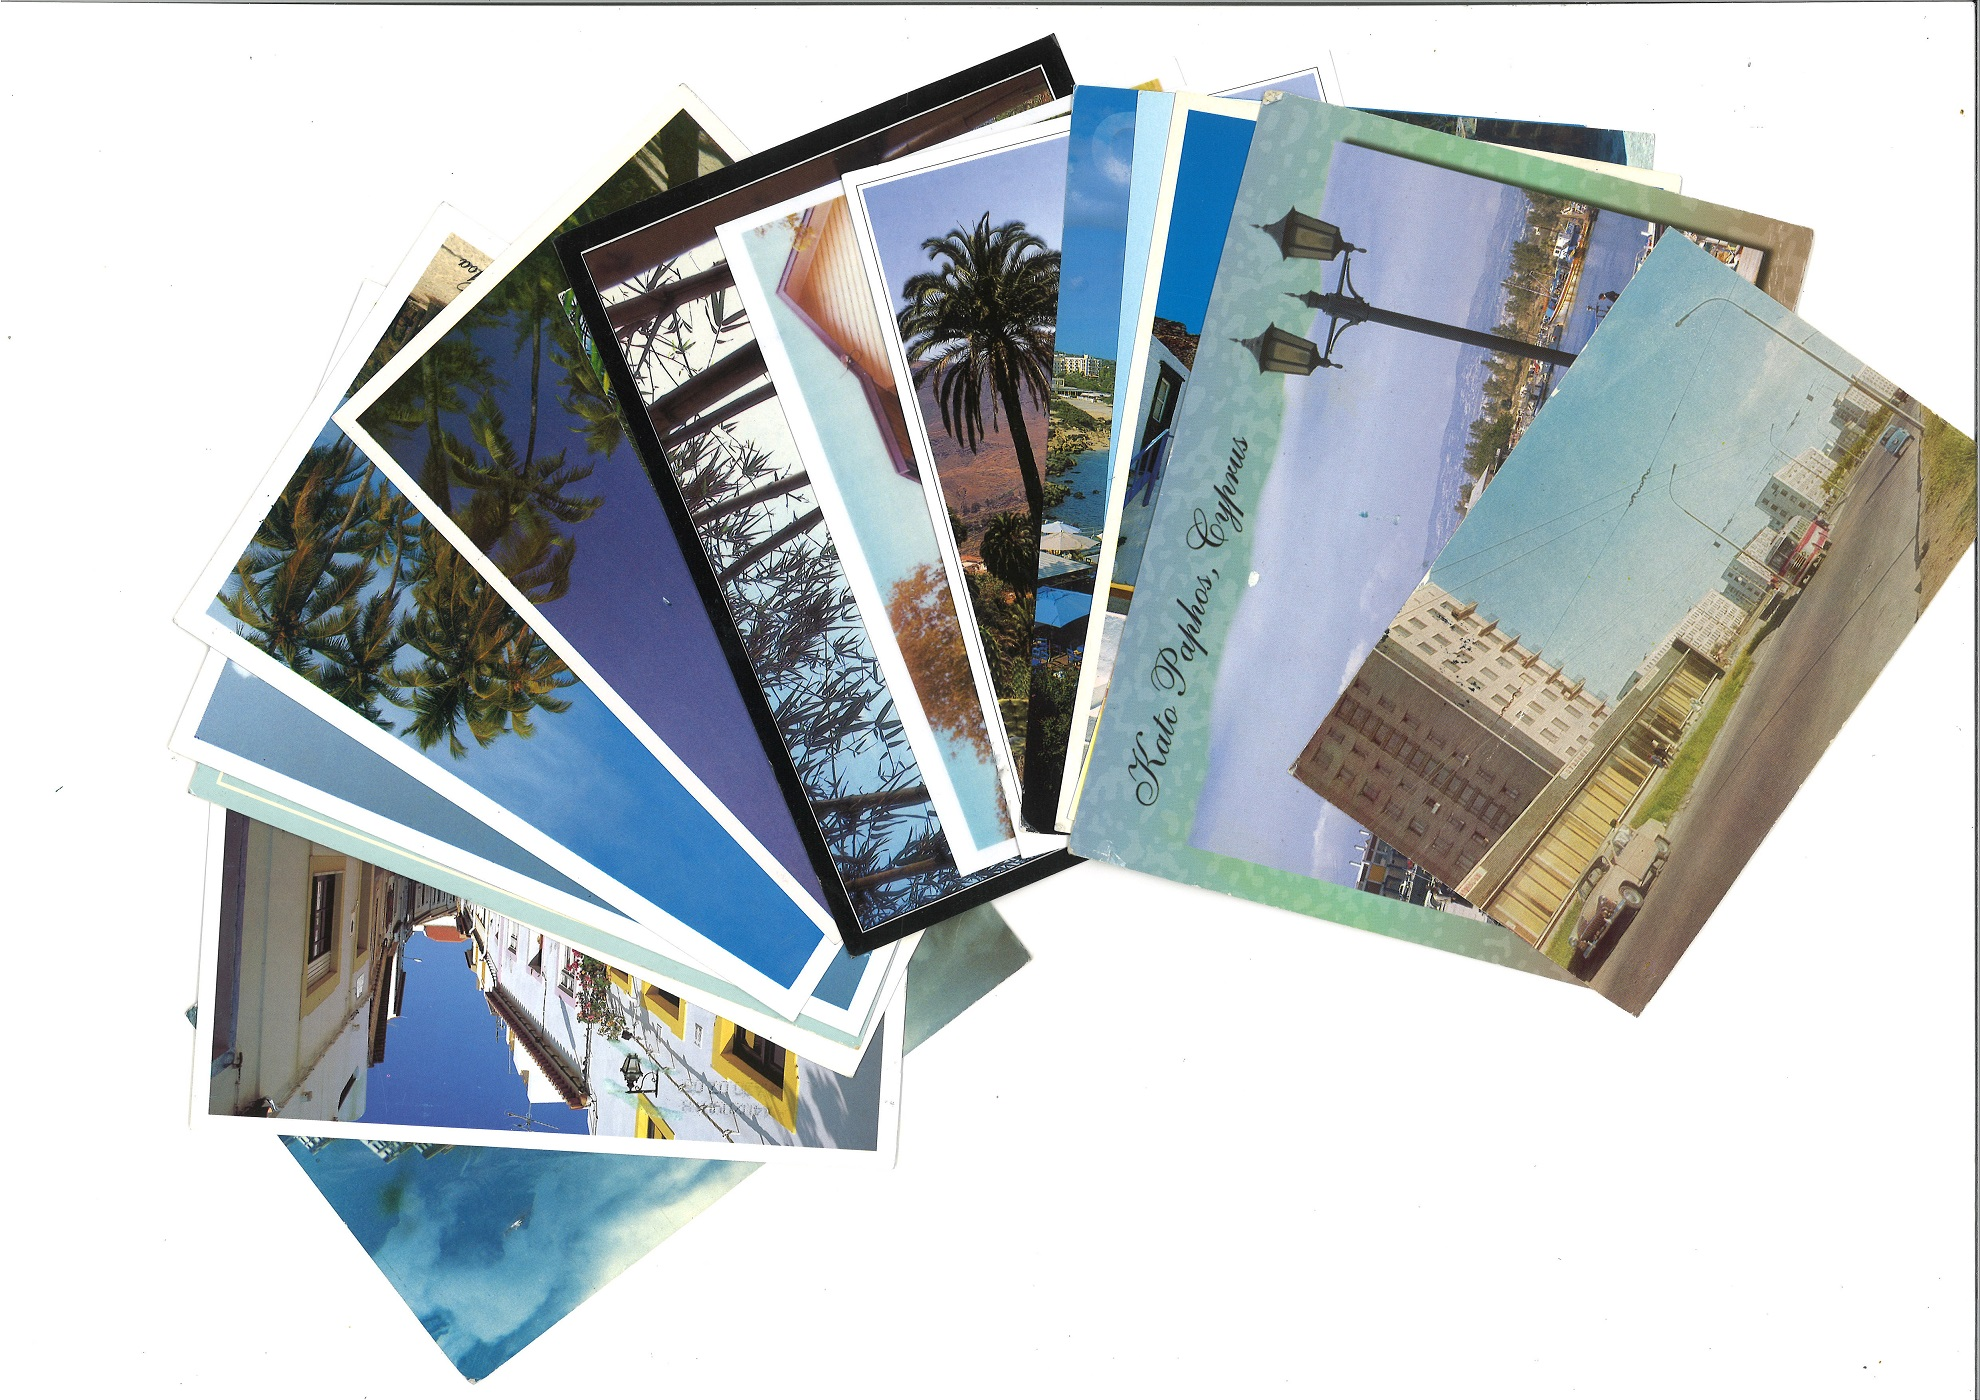 Postcard collection 16 cards from around the world plus 16 covers from GB. Good condition. We